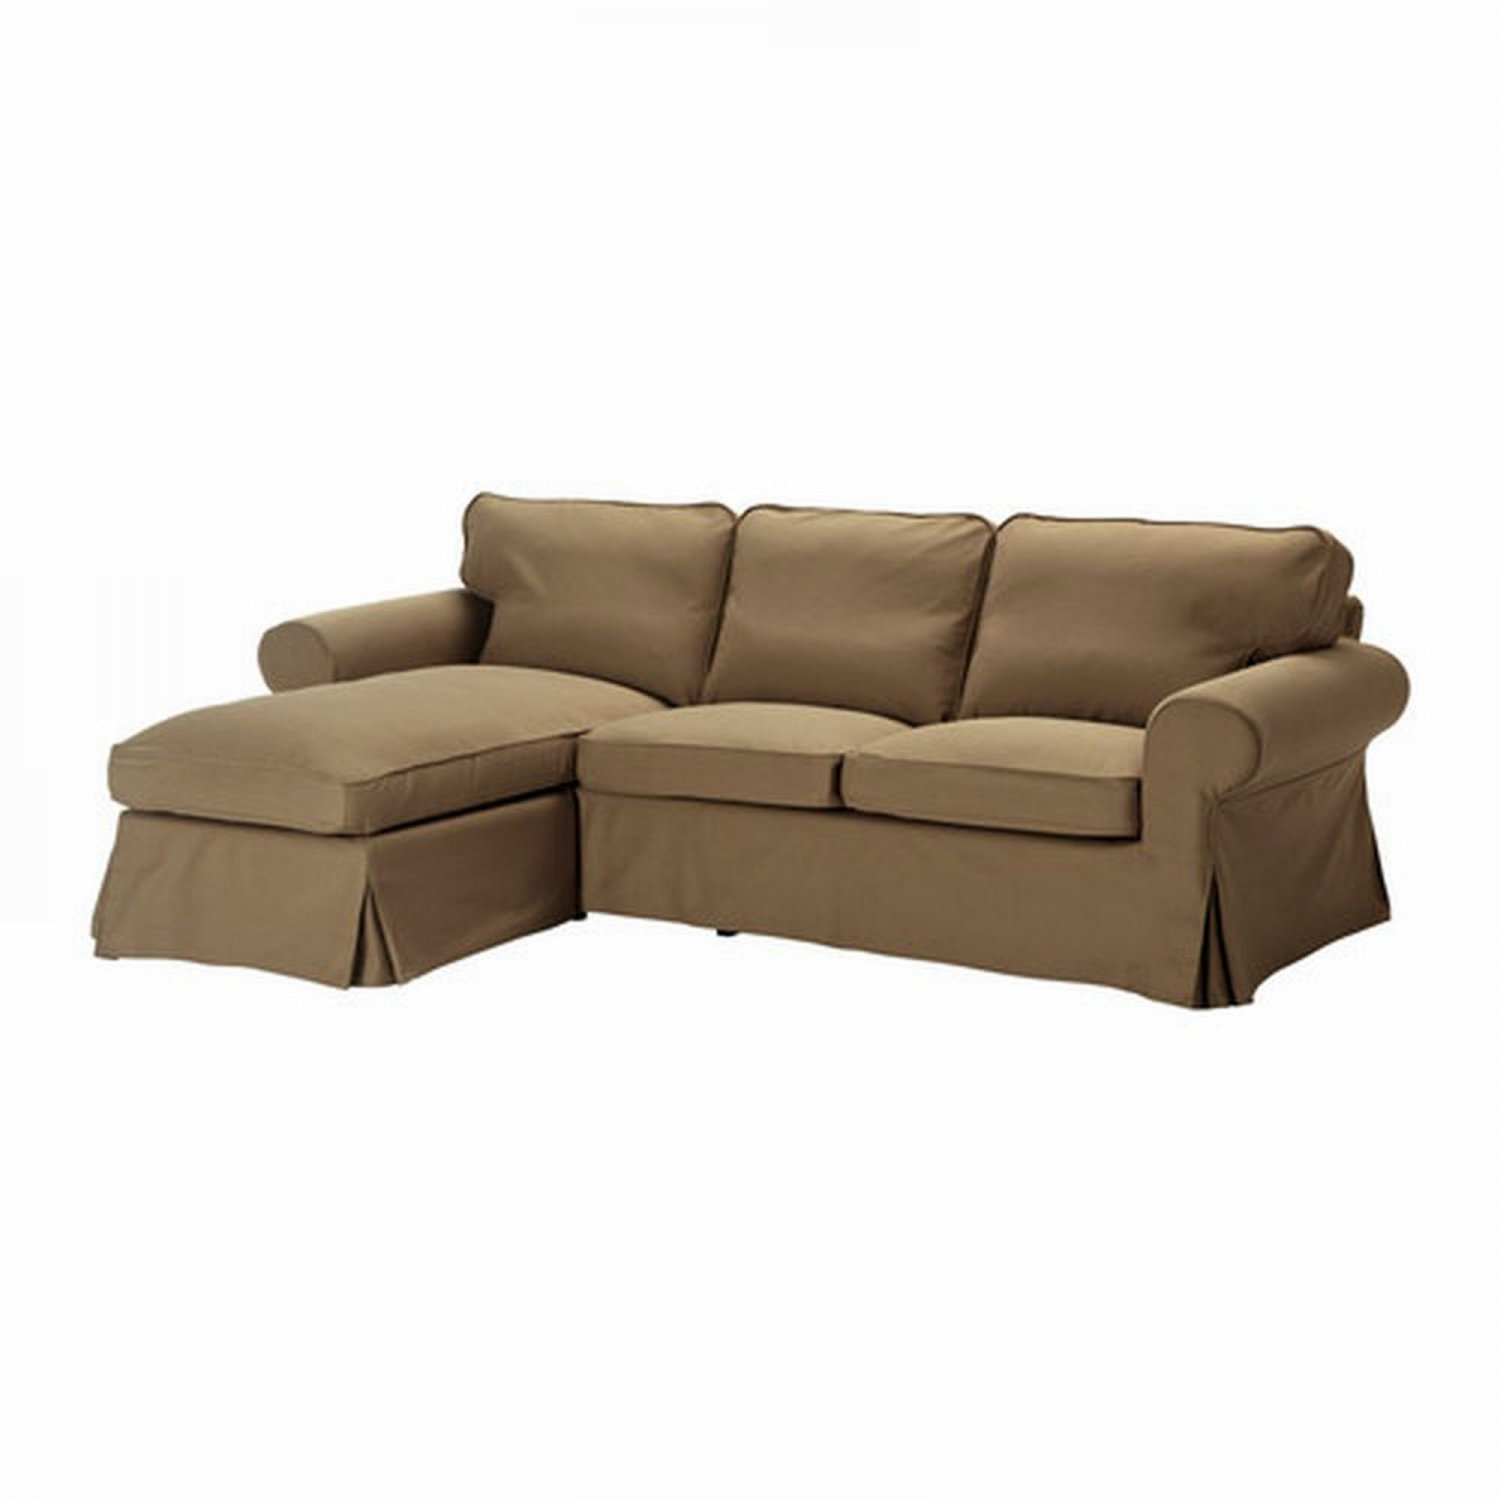 Ikea ektorp 2 seat loveseat sofa with chaise cover for Ikea divan